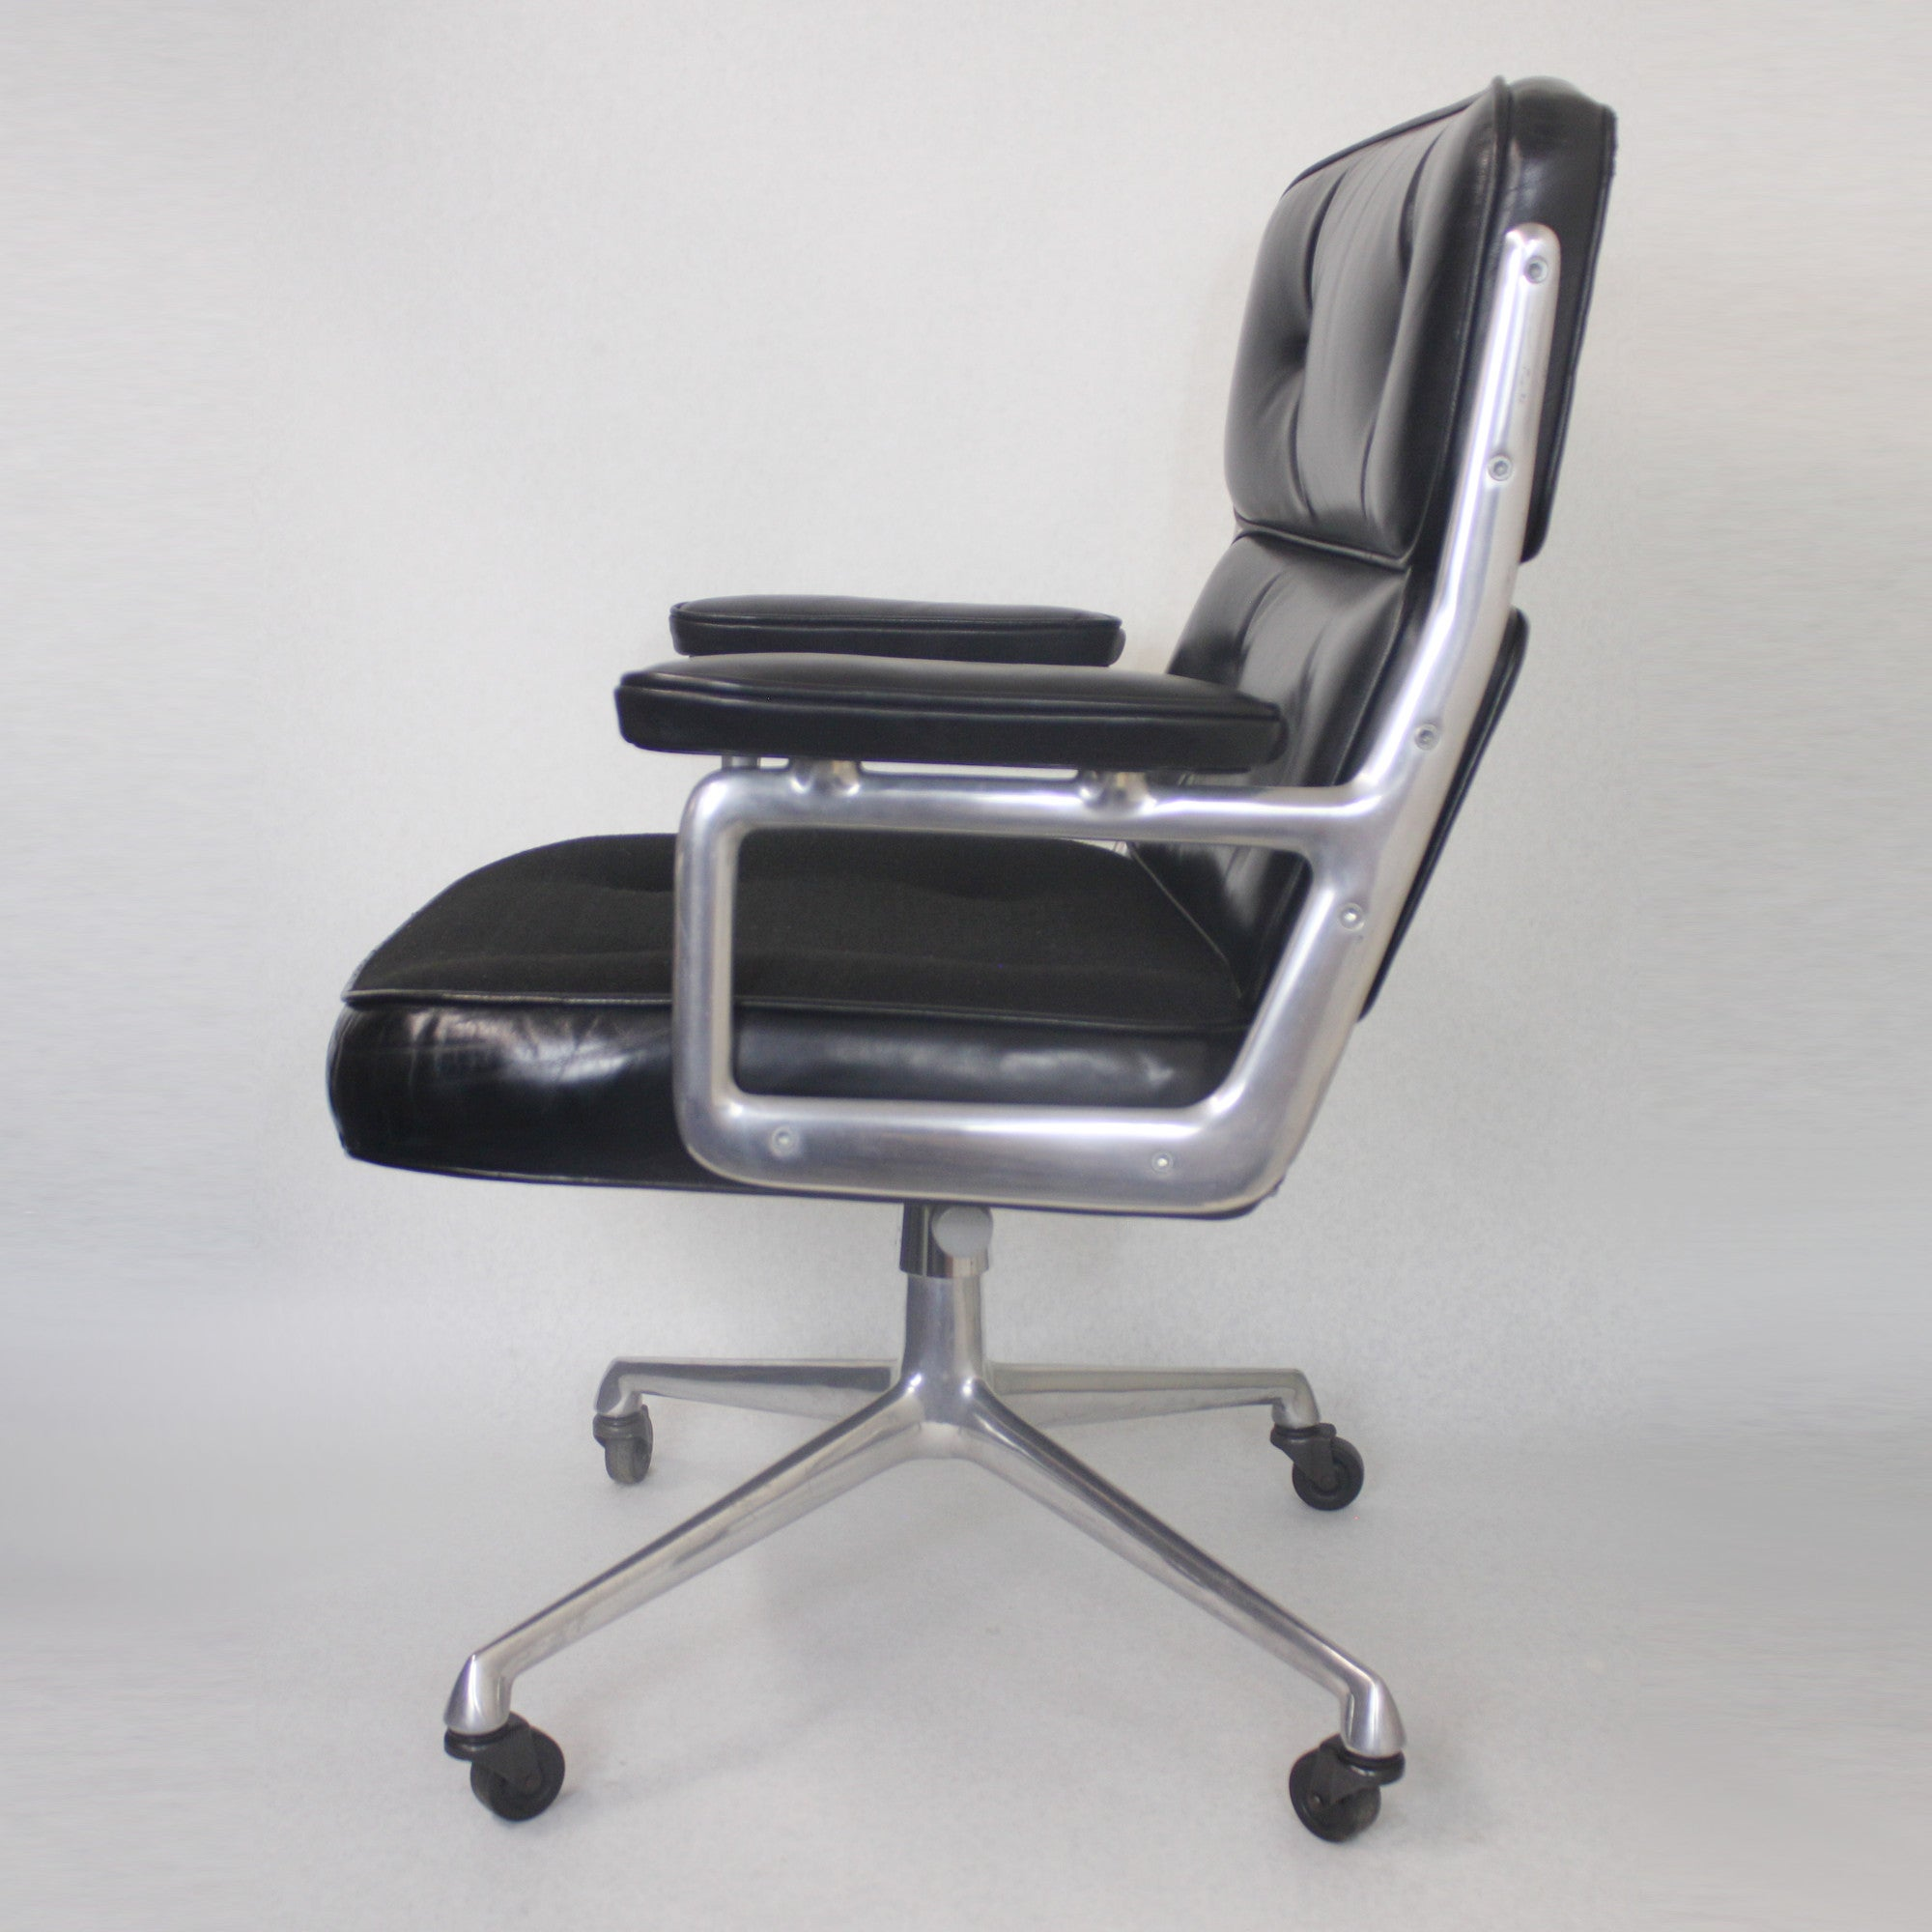 Wunderbar 1960s Mid Century Modern Herman Miller Time Life Executive Desk Lounge  Chair For Sale At 1stdibs